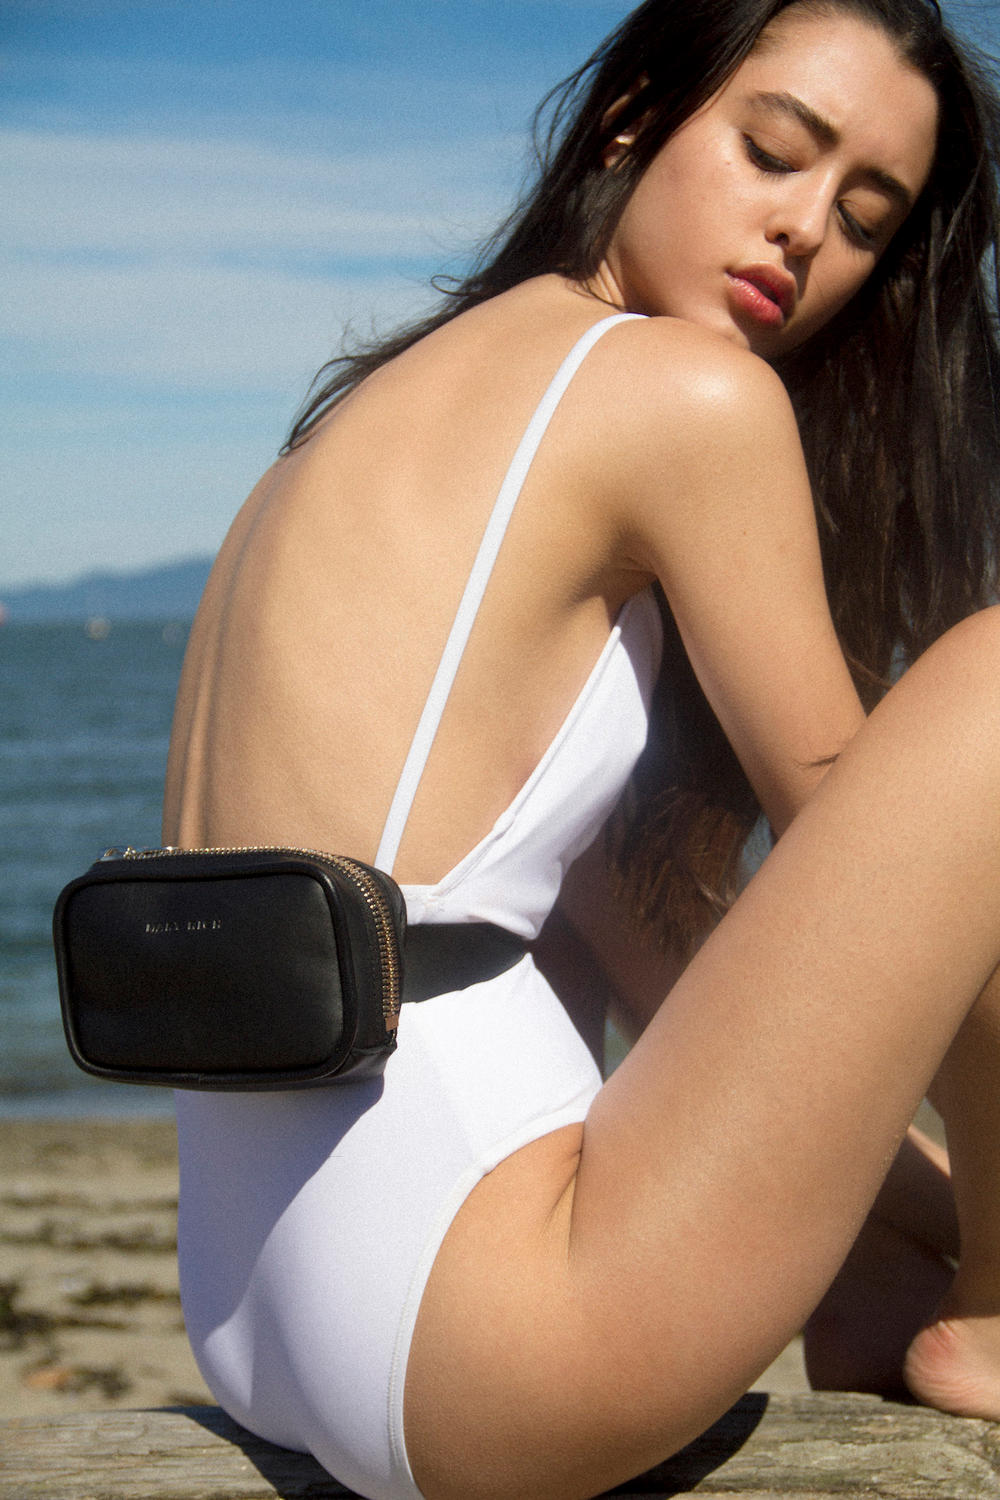 Mary Rich Bags LEather Designer Belt Bag Fanny Pack Toronto Pop Up Vancouver Canada